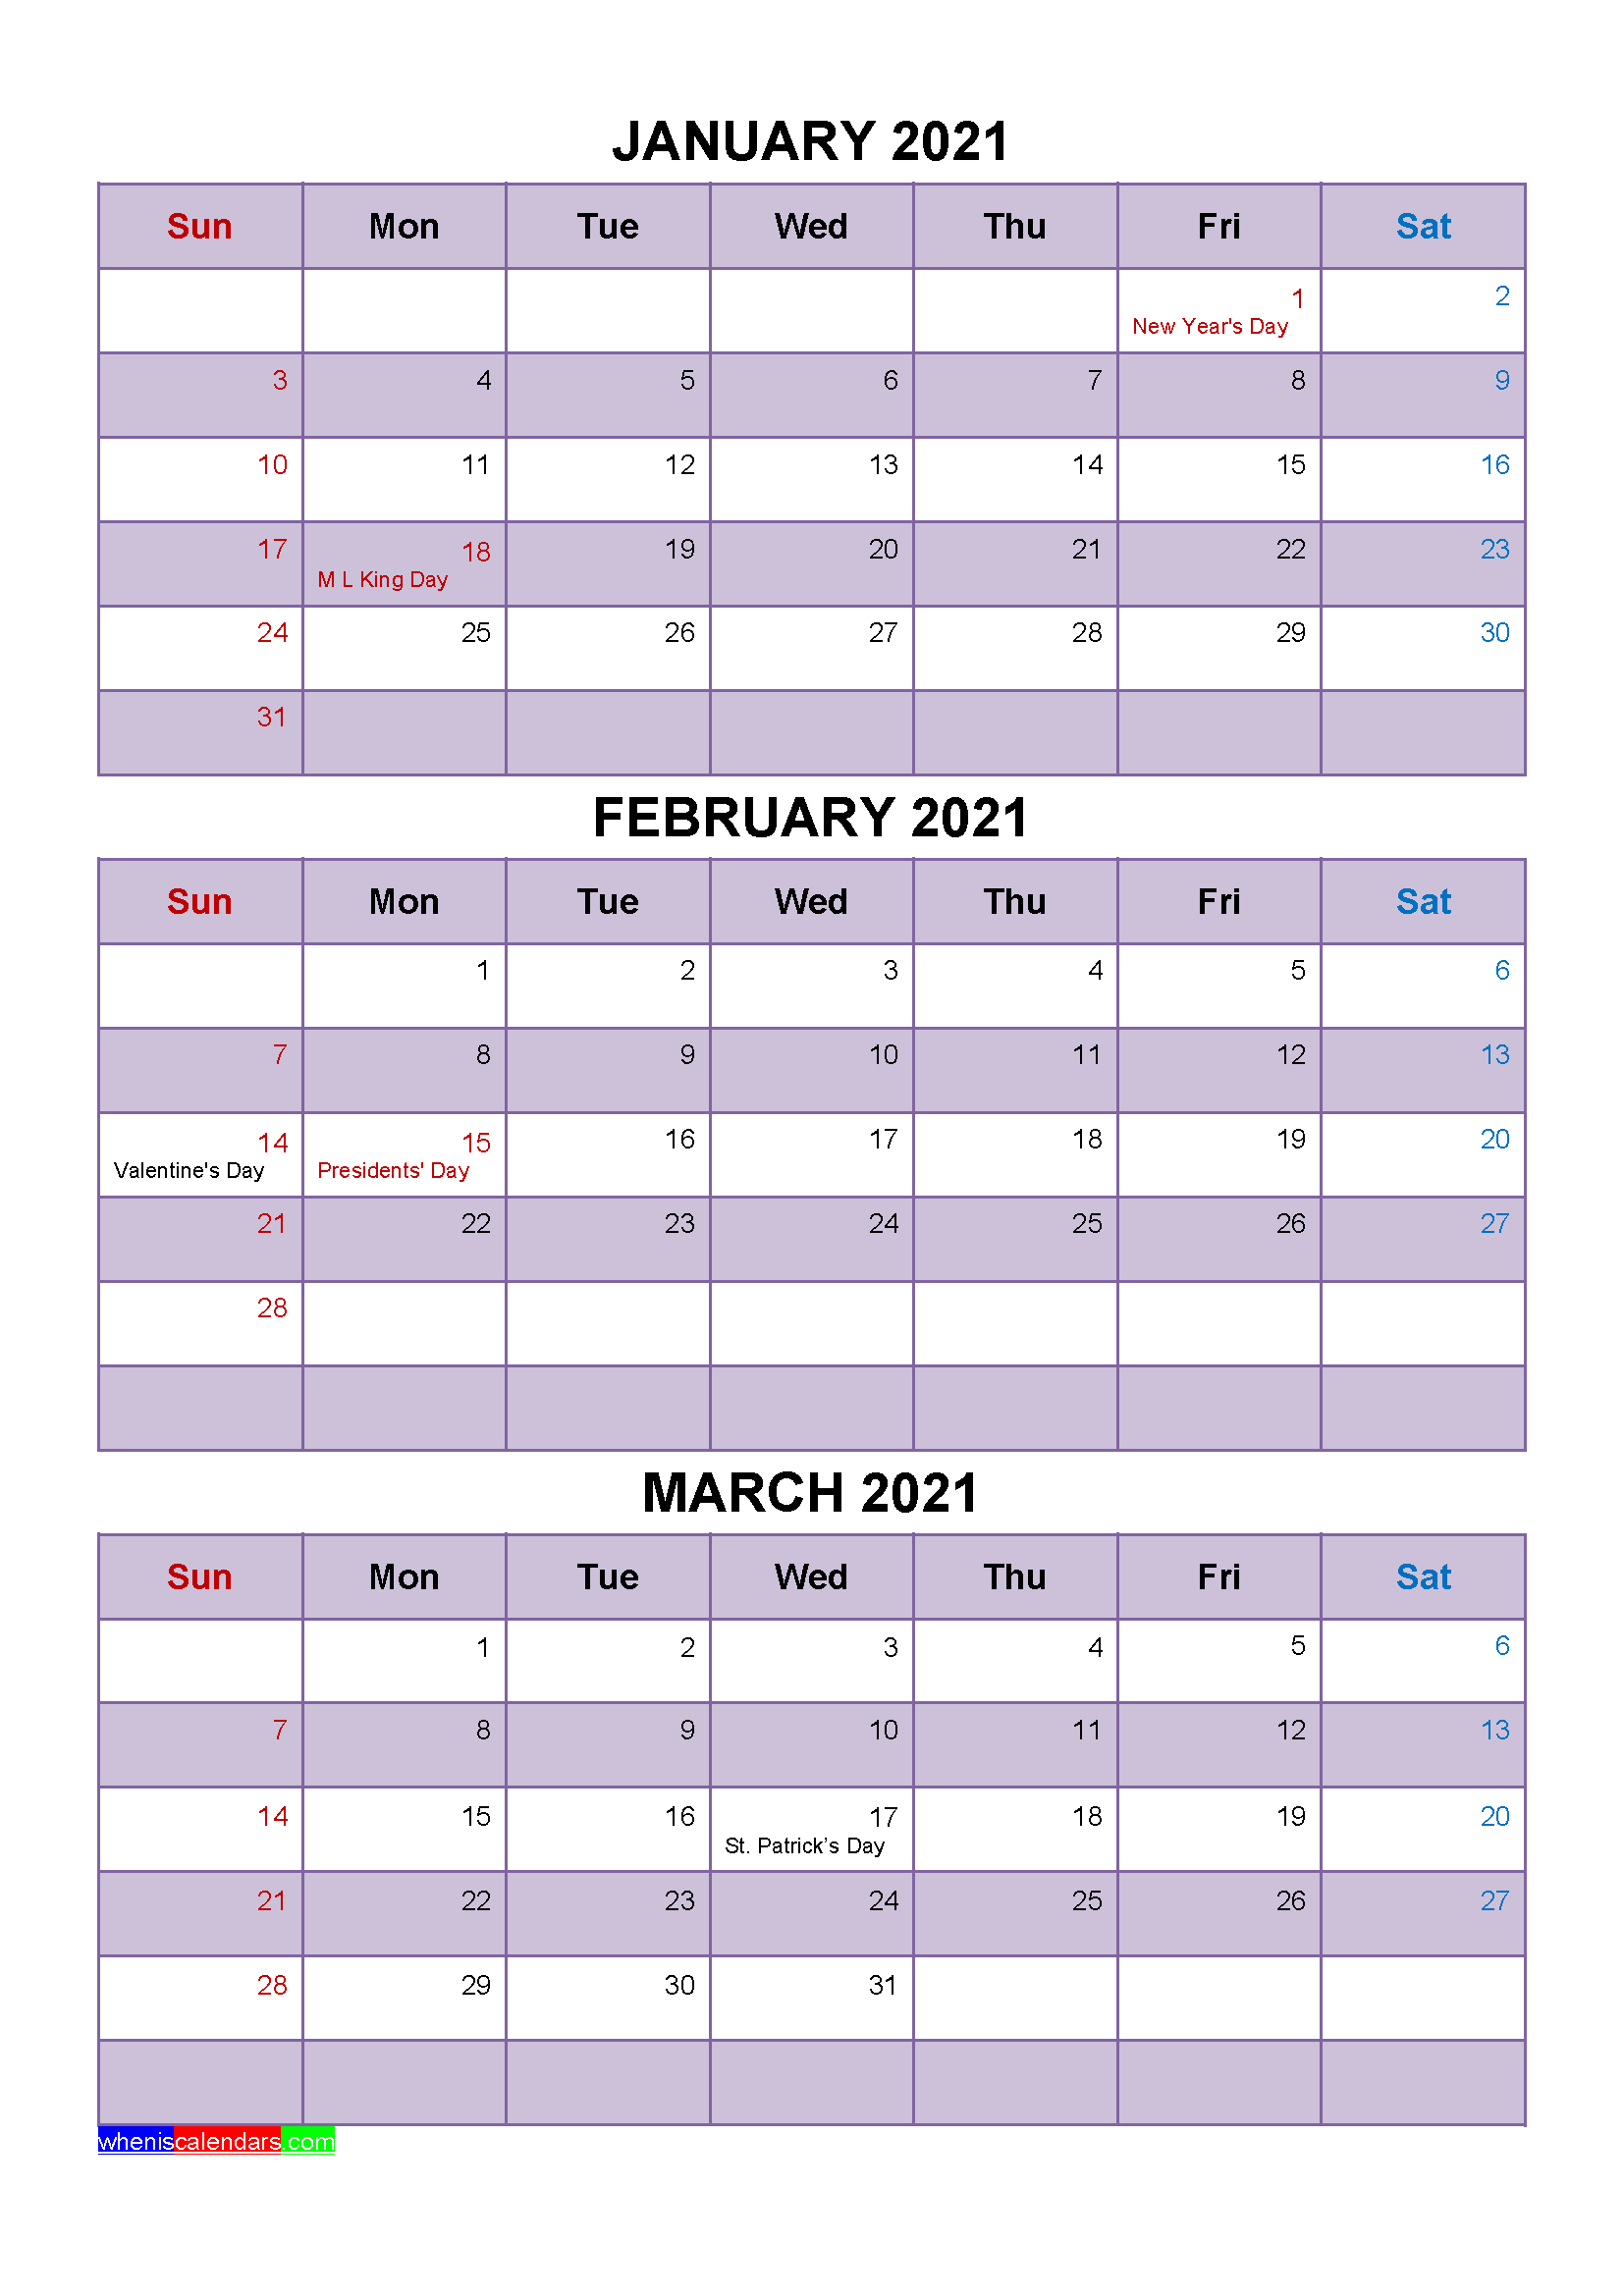 Free Printable January February March 2021 Calendar with Holidays as Word, PDF